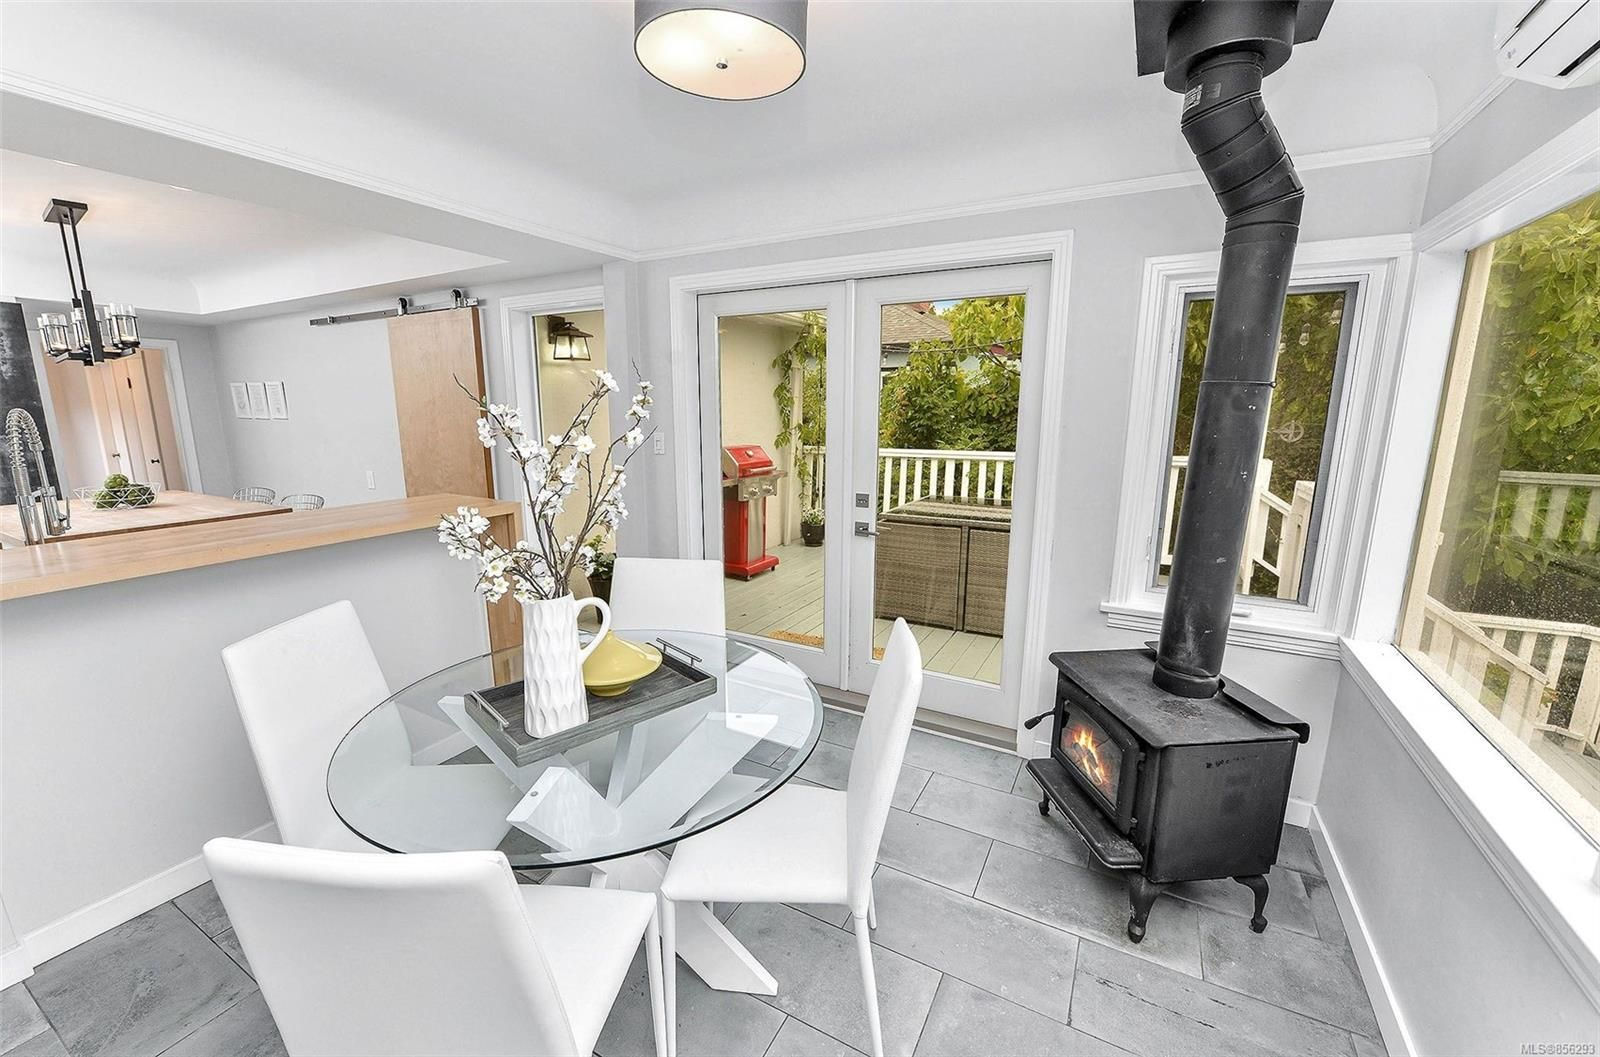 Photo 16: Photos: 1753 Armstrong Ave in : OB North Oak Bay House for sale (Oak Bay)  : MLS®# 856293